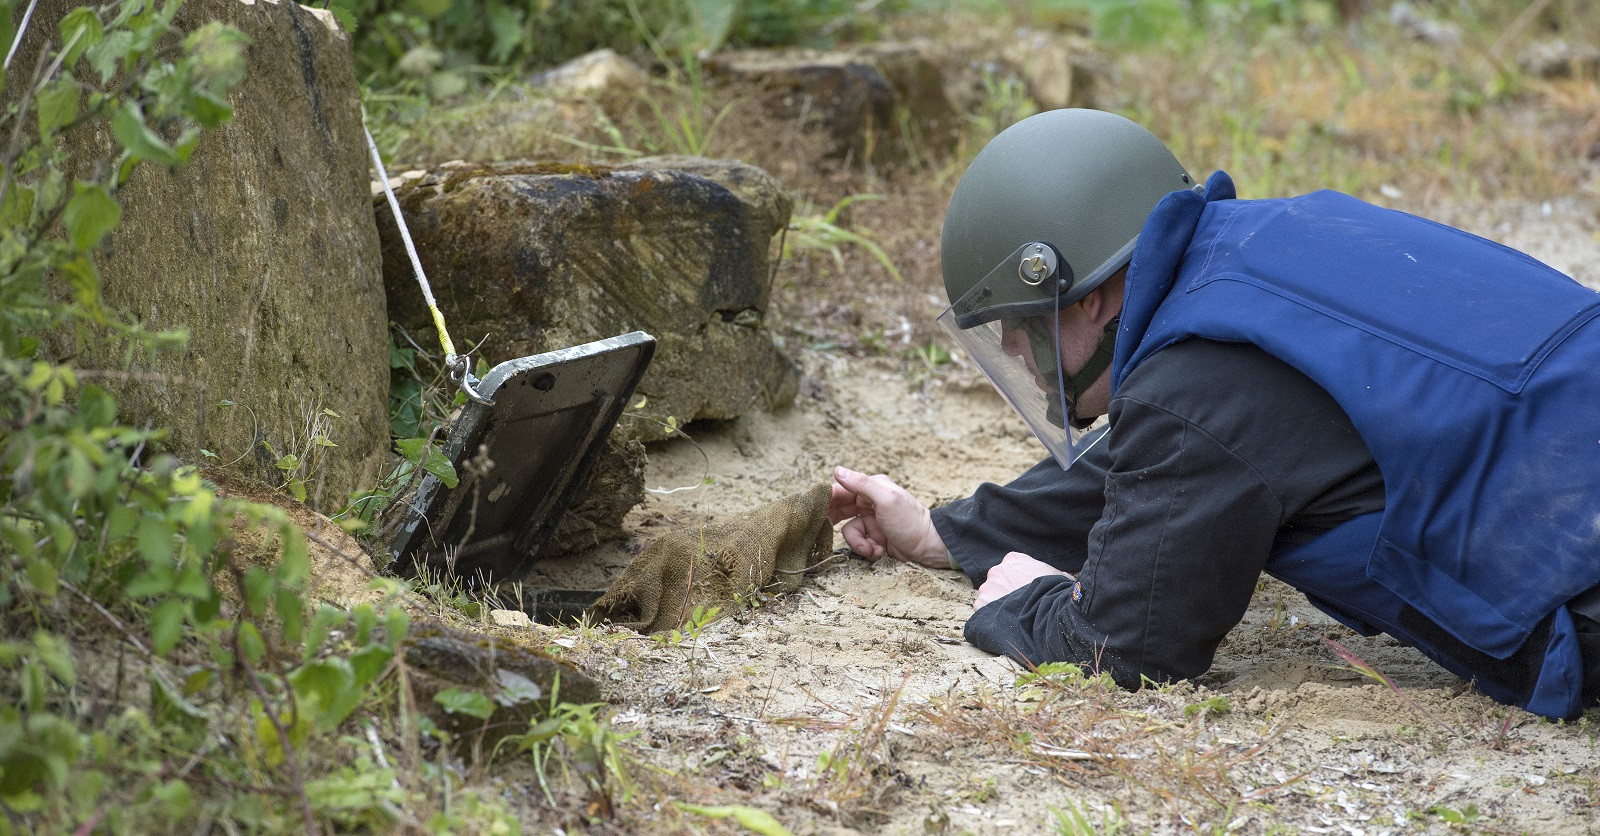 A demining exercise on one of ISSEE's Explosives training courses